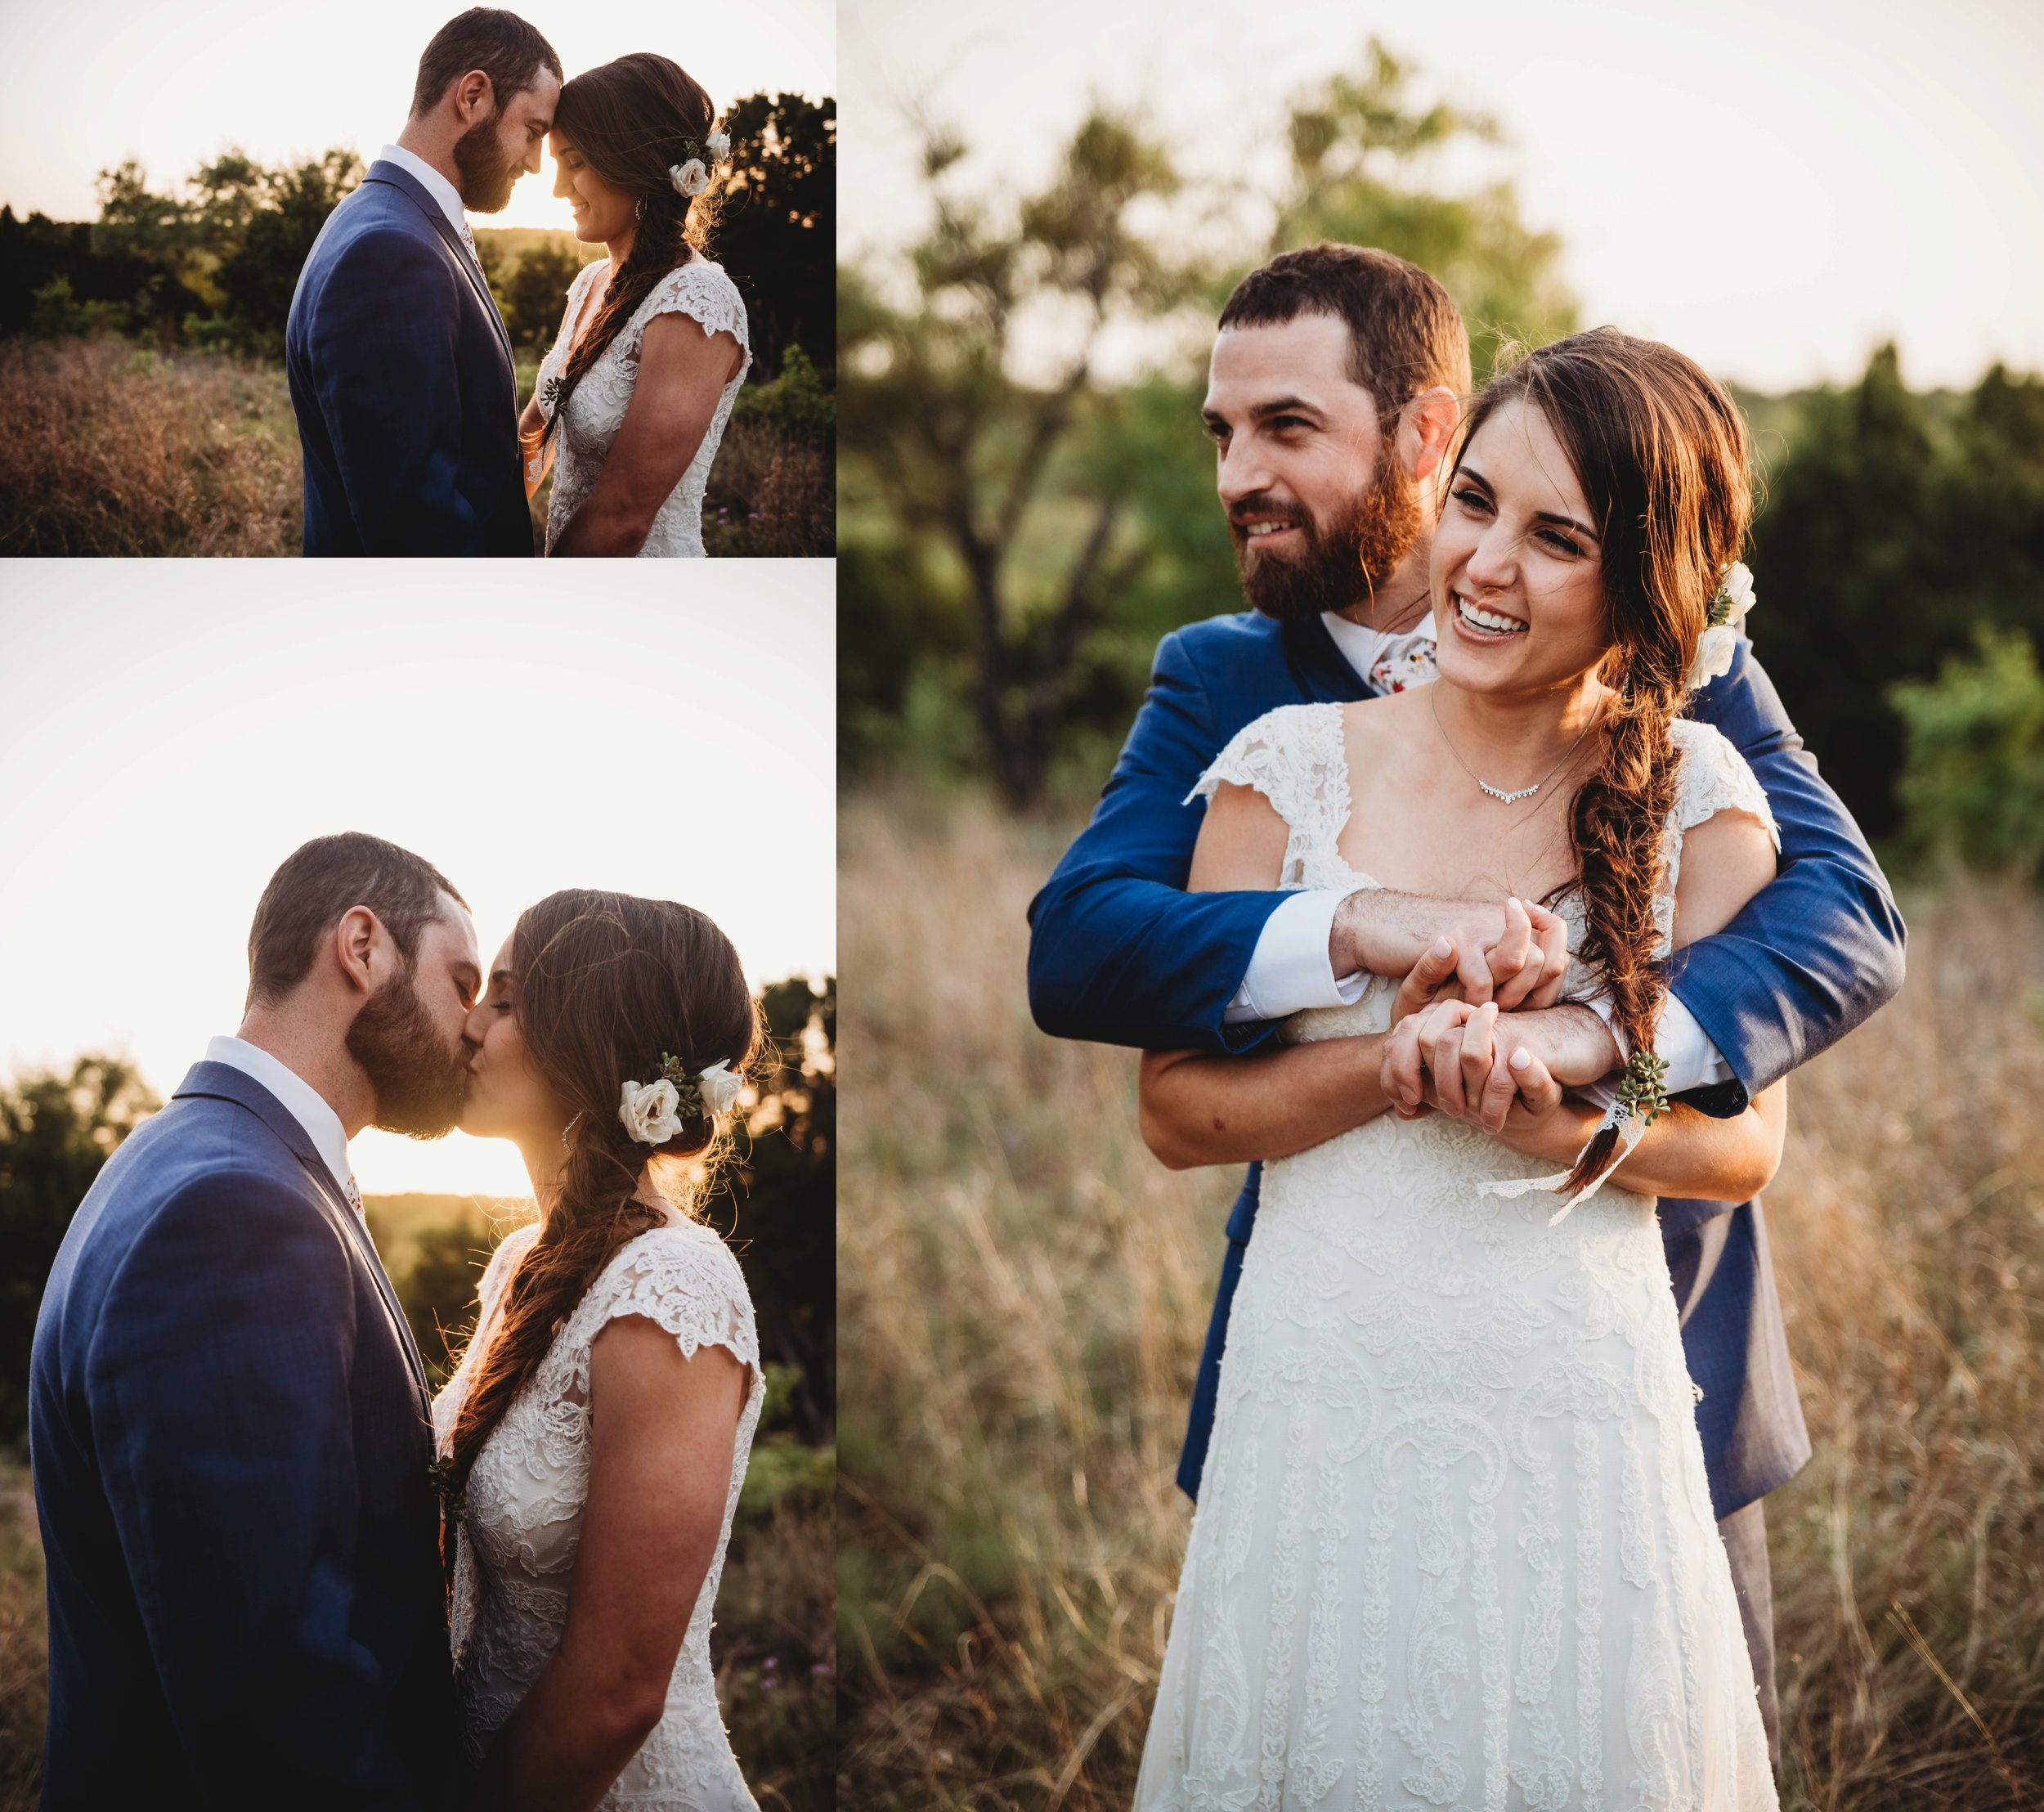 The-White-Fiore-Five-Oaks-Farm-Fort-Worth-Wedding-Planner-Bride-And-Groom-Portraits_007.jpg